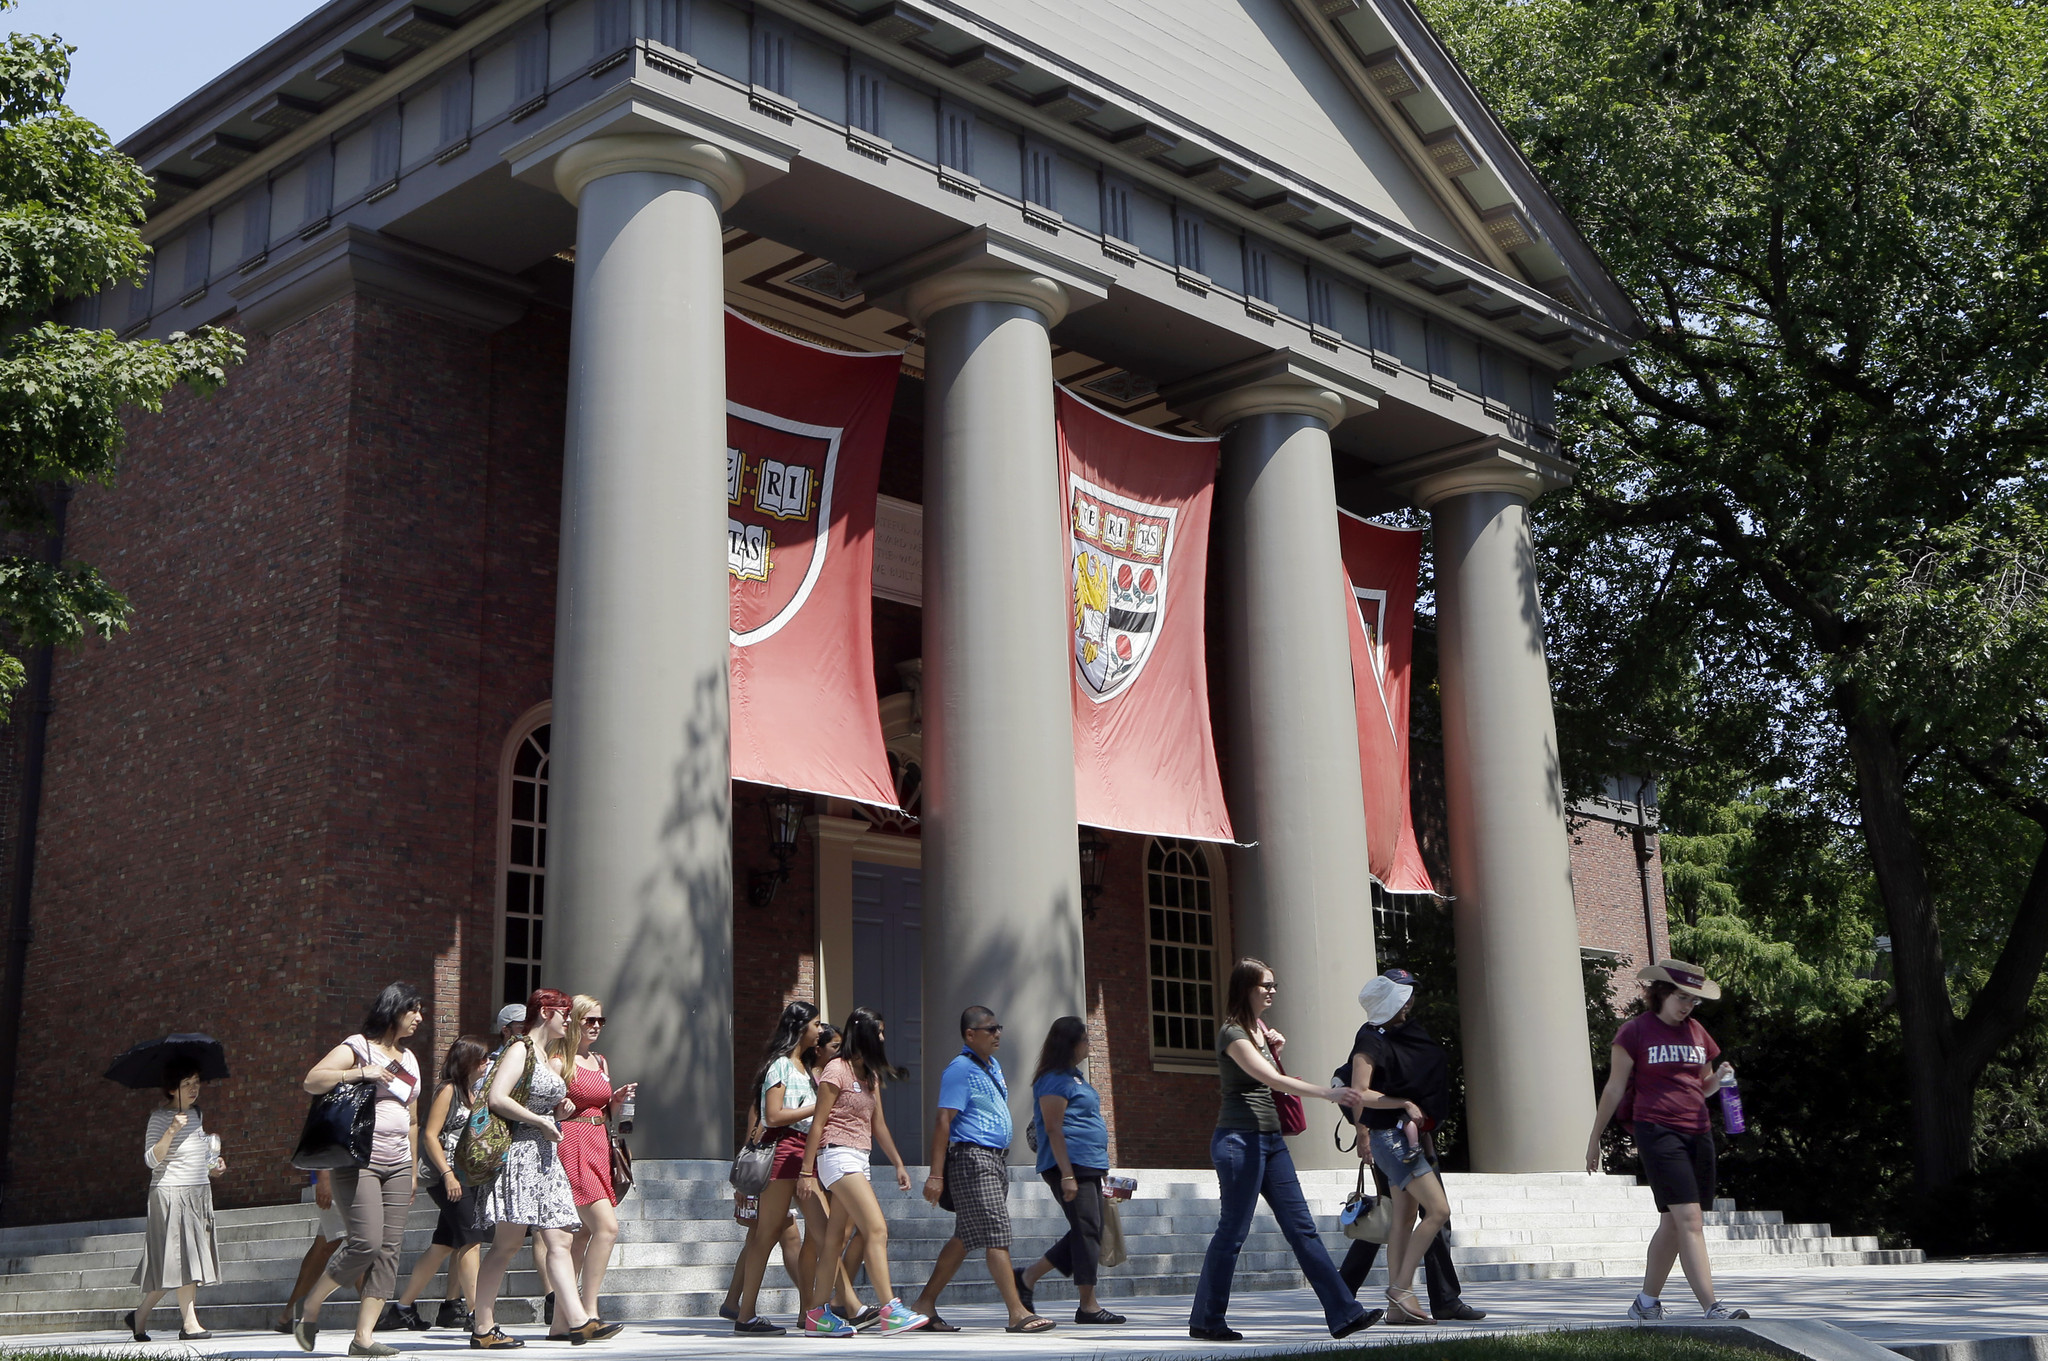 Sheltered students go to college, avoid education